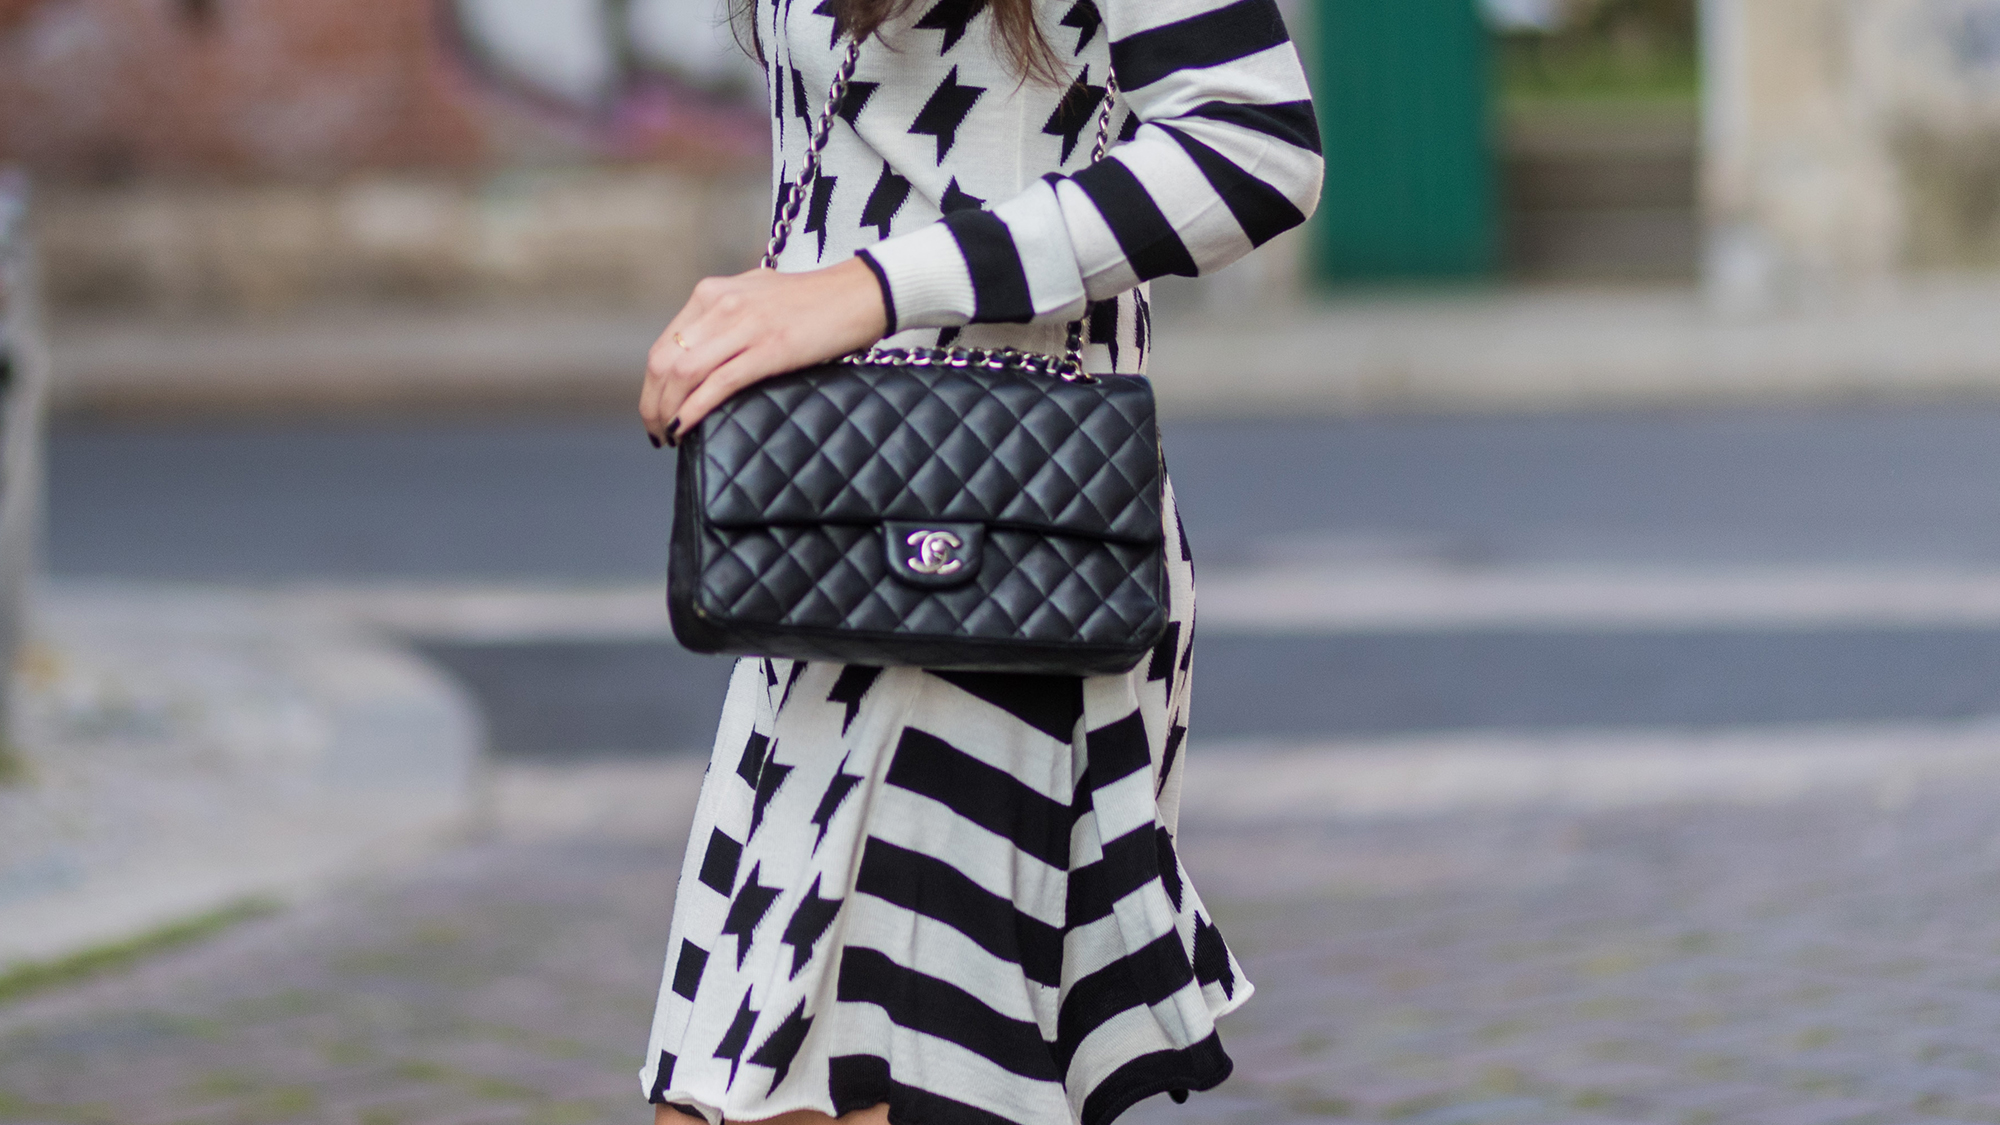 cc33a8fbfae0 Why Buying A Chanel 2.55 Could Be The Best Investment Of Your Life